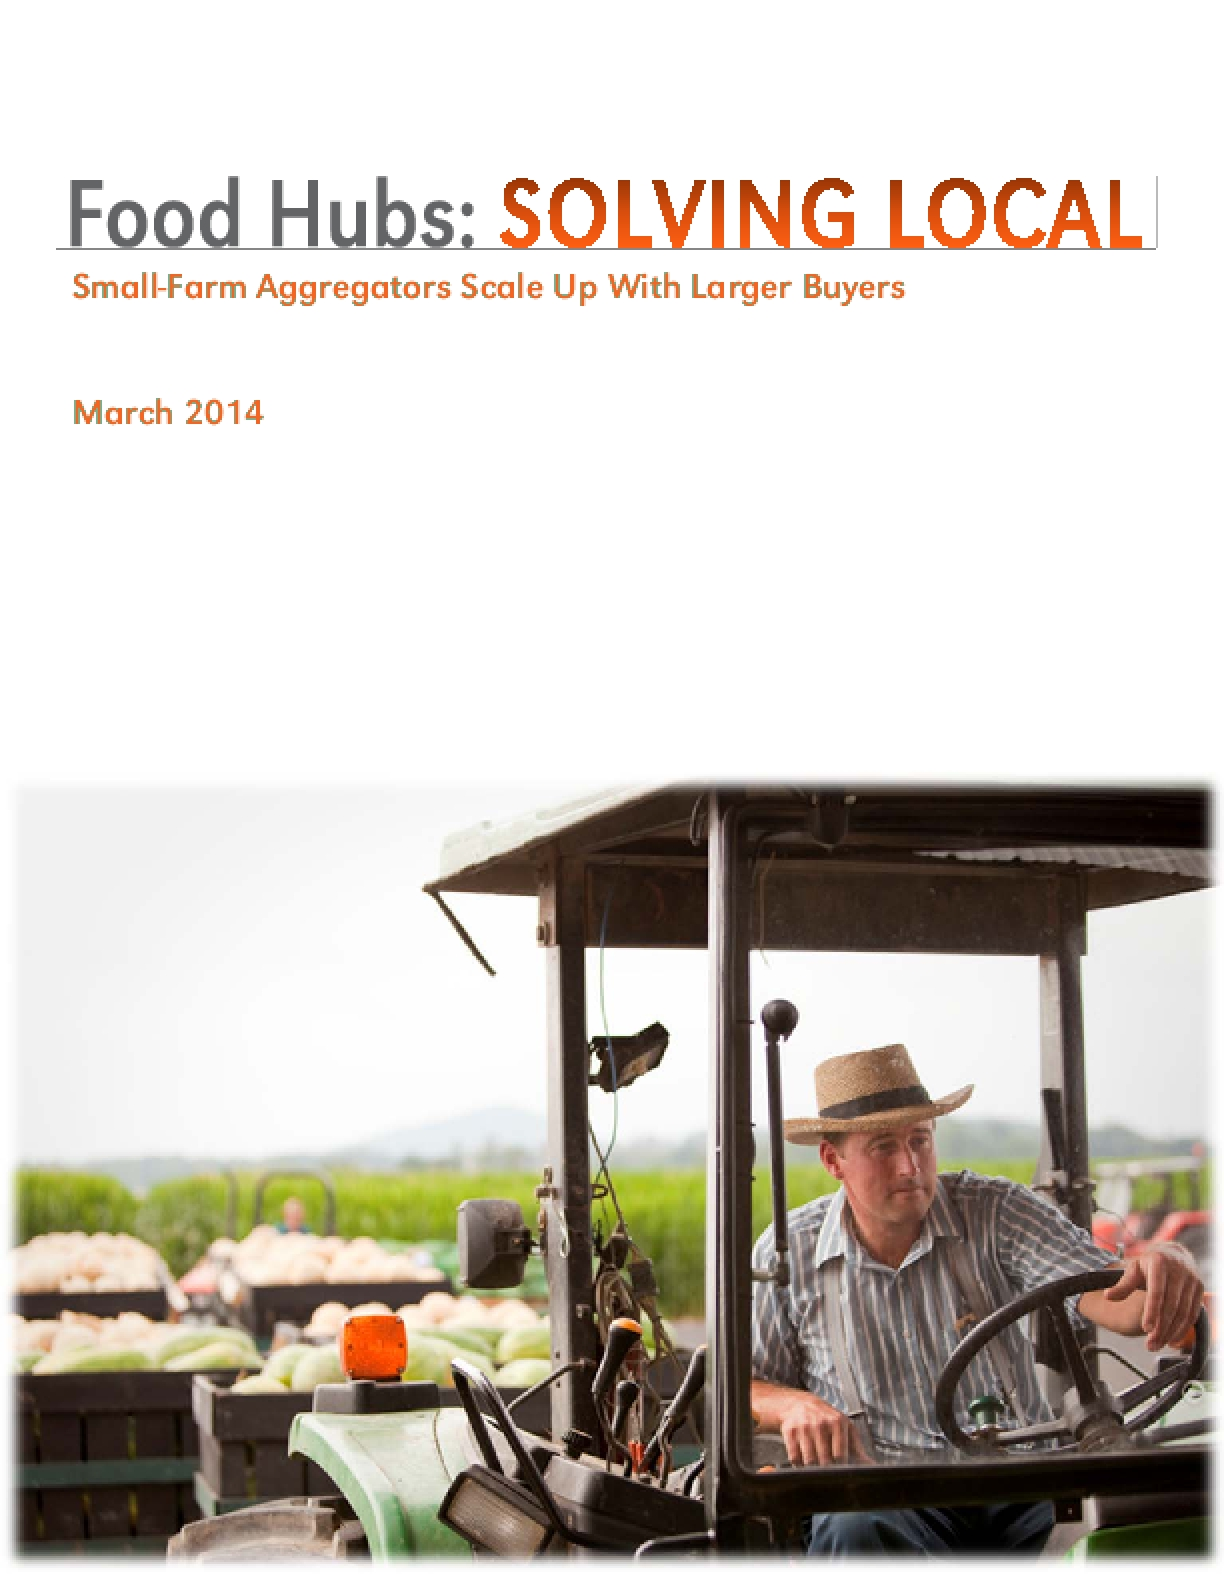 Food Hubs: Solving Local - Small-Farm Aggregators Scale Up With Larger Buyers